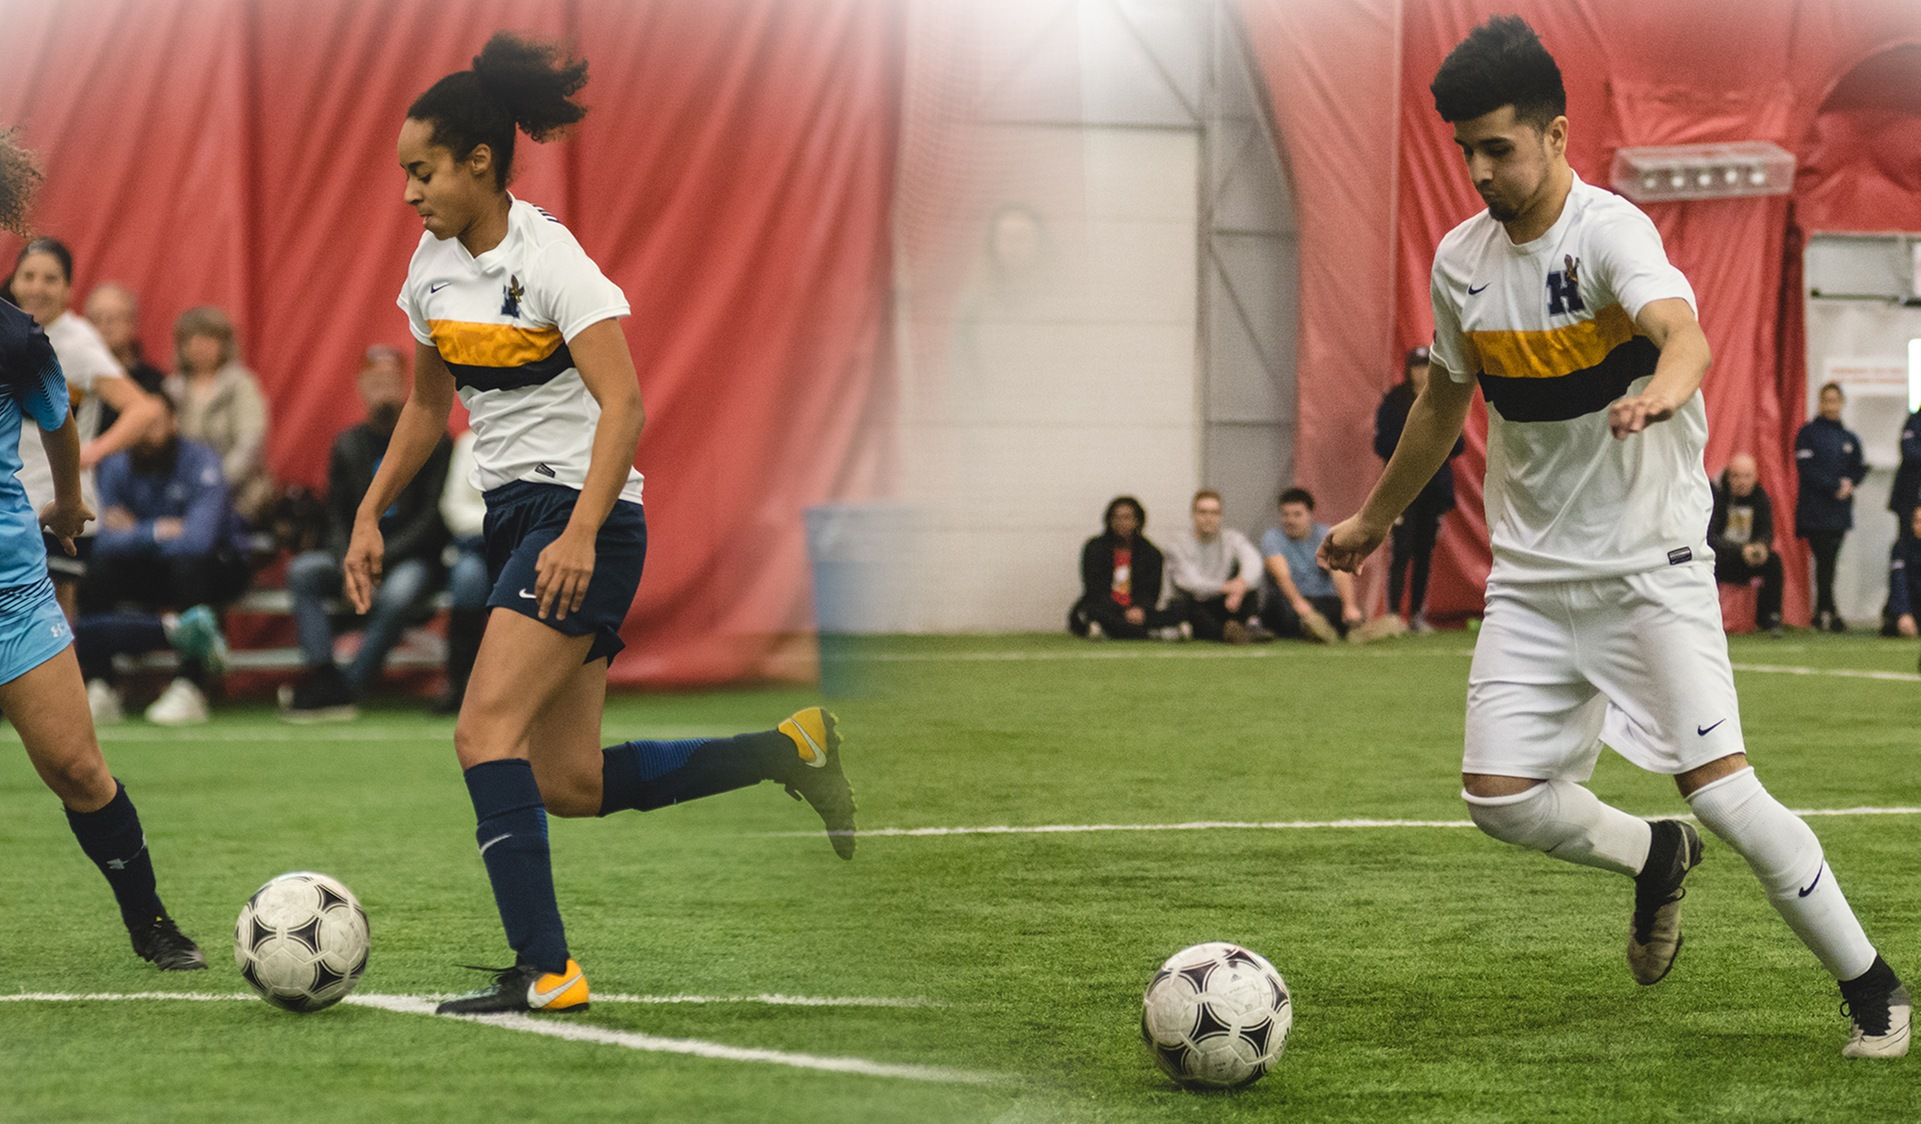 HUMBER INDOOR SOCCER ANNOUNCES OPEN TRYOUT DATES